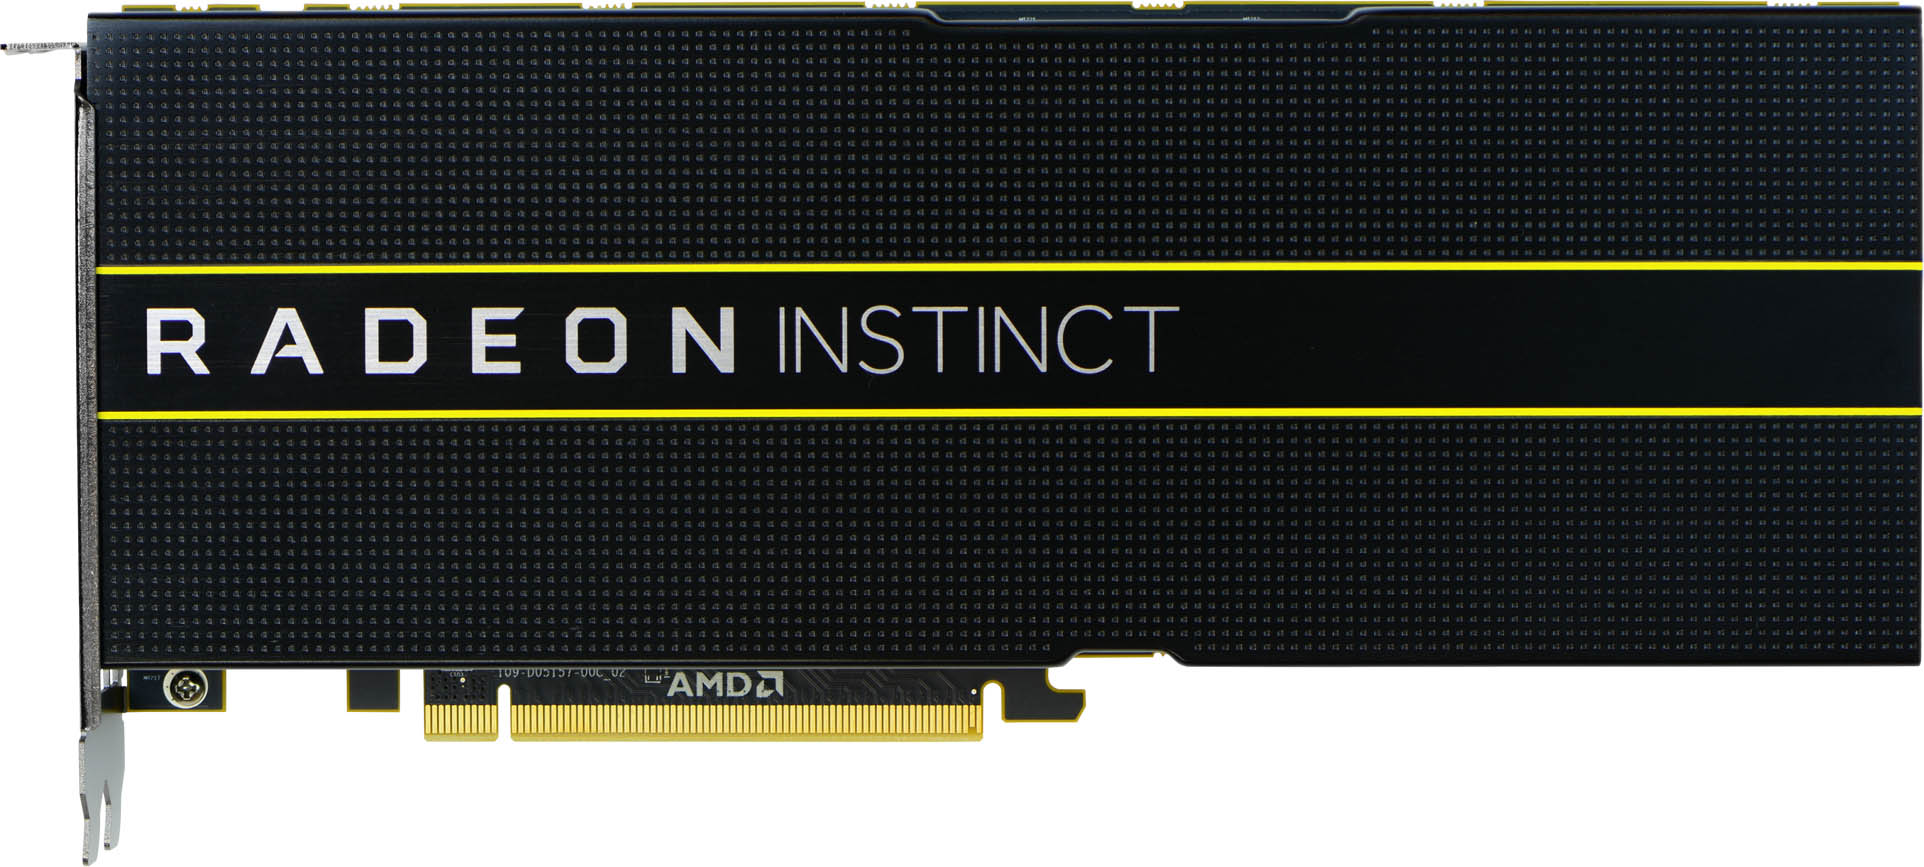 While late last year was all the hype surrounding Zen and Polaris for AMD, this year, it's EPYC, Threadripper, Vega, and now Instinct. The role of the GPU has changed somewhat over the years, moving beyond simple graphics accelerators.